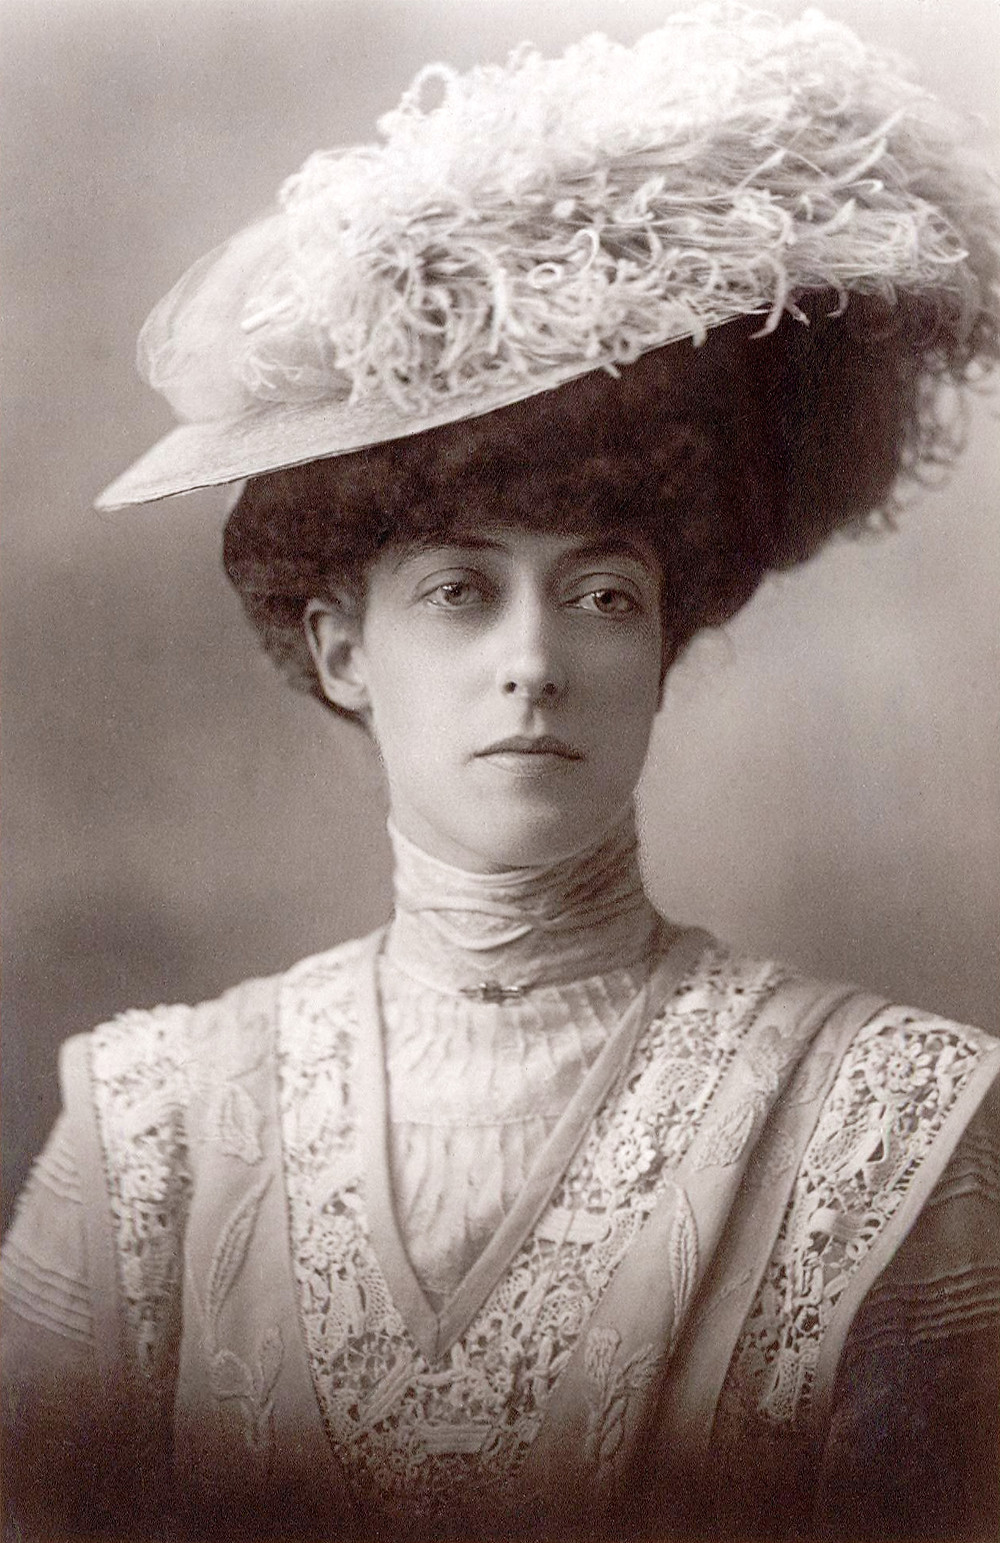 portrait of Princess Victoria of the United Kingdom, daughter of King Edward VII and Queen Alexandra. Royal family history, vintage photo